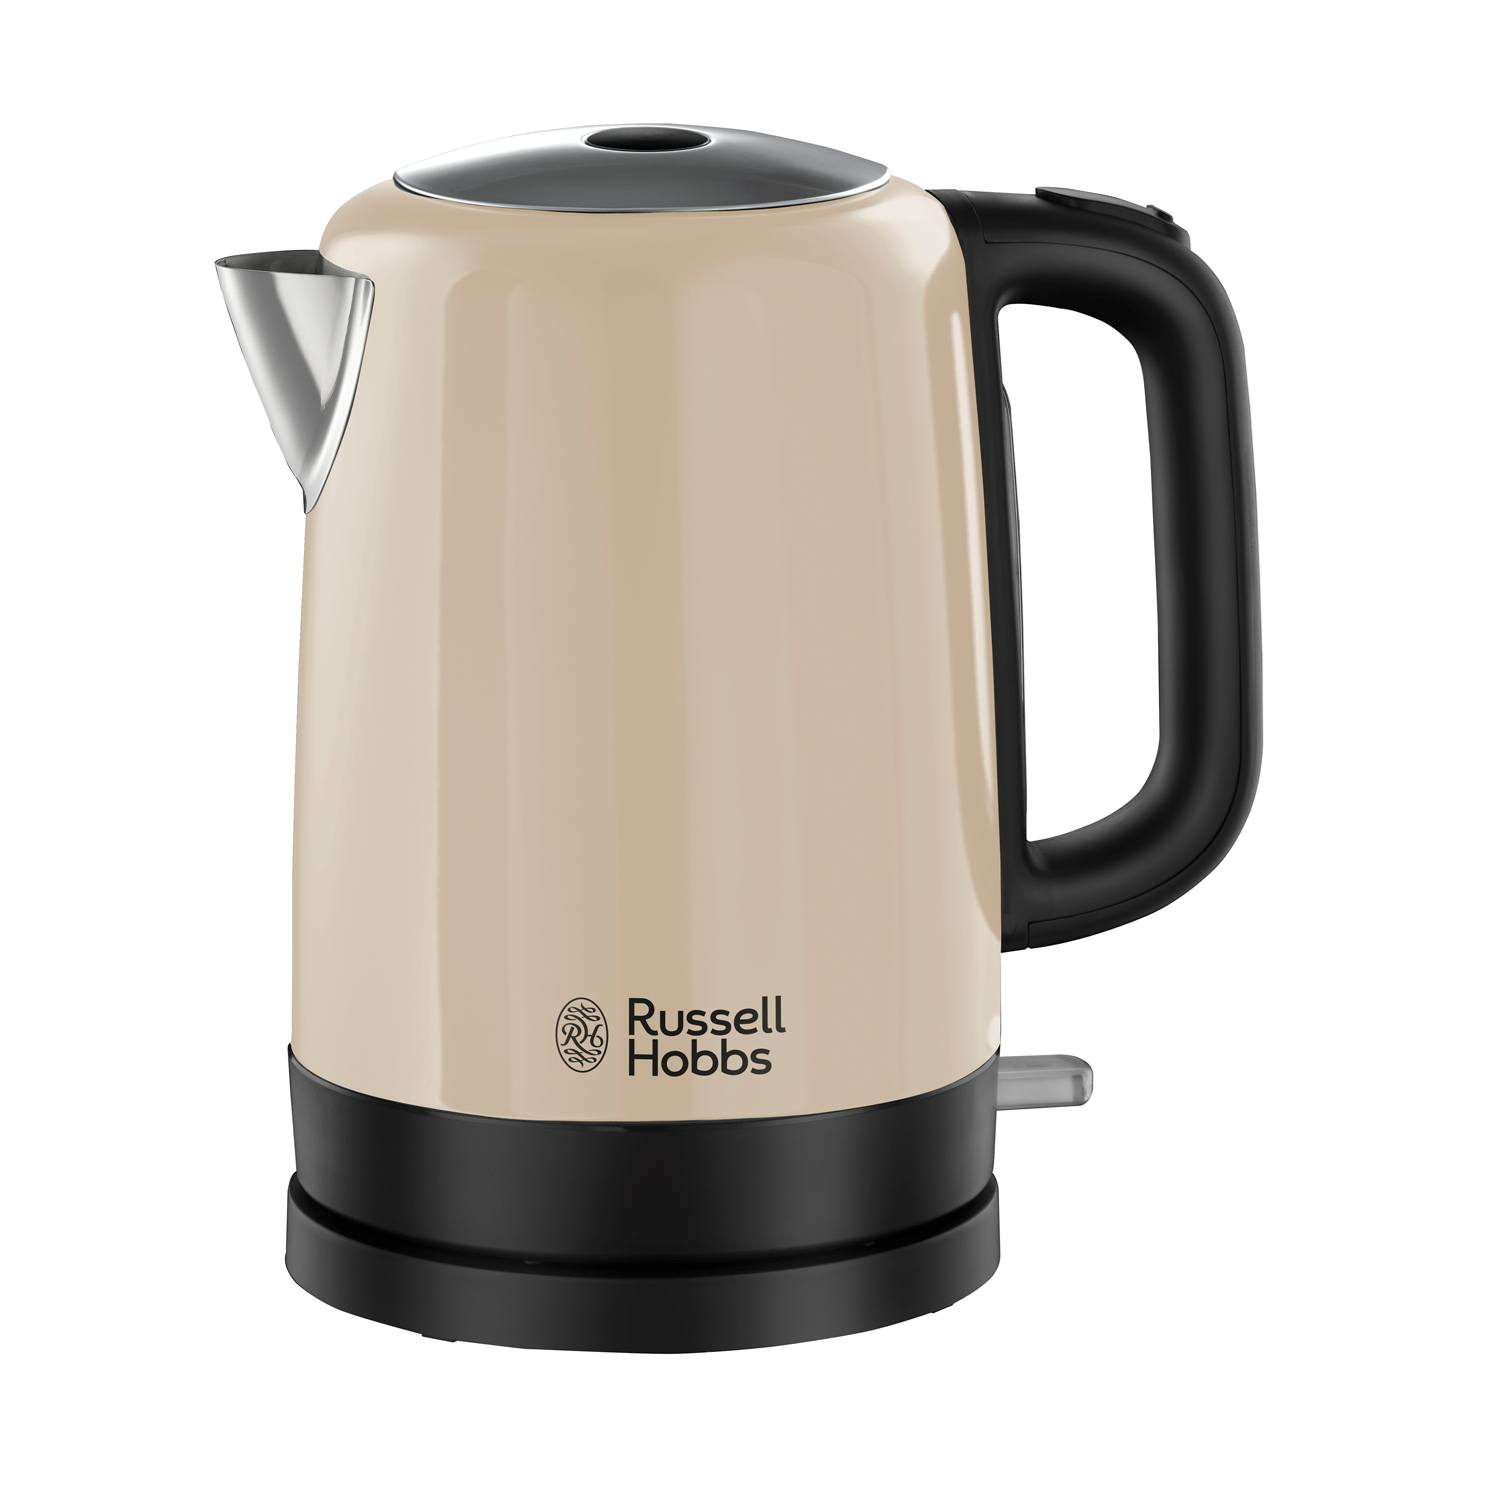 russell hobbs 20614 1 7l 3000w rapid boil canterbury cordless kettle in cream ebay. Black Bedroom Furniture Sets. Home Design Ideas